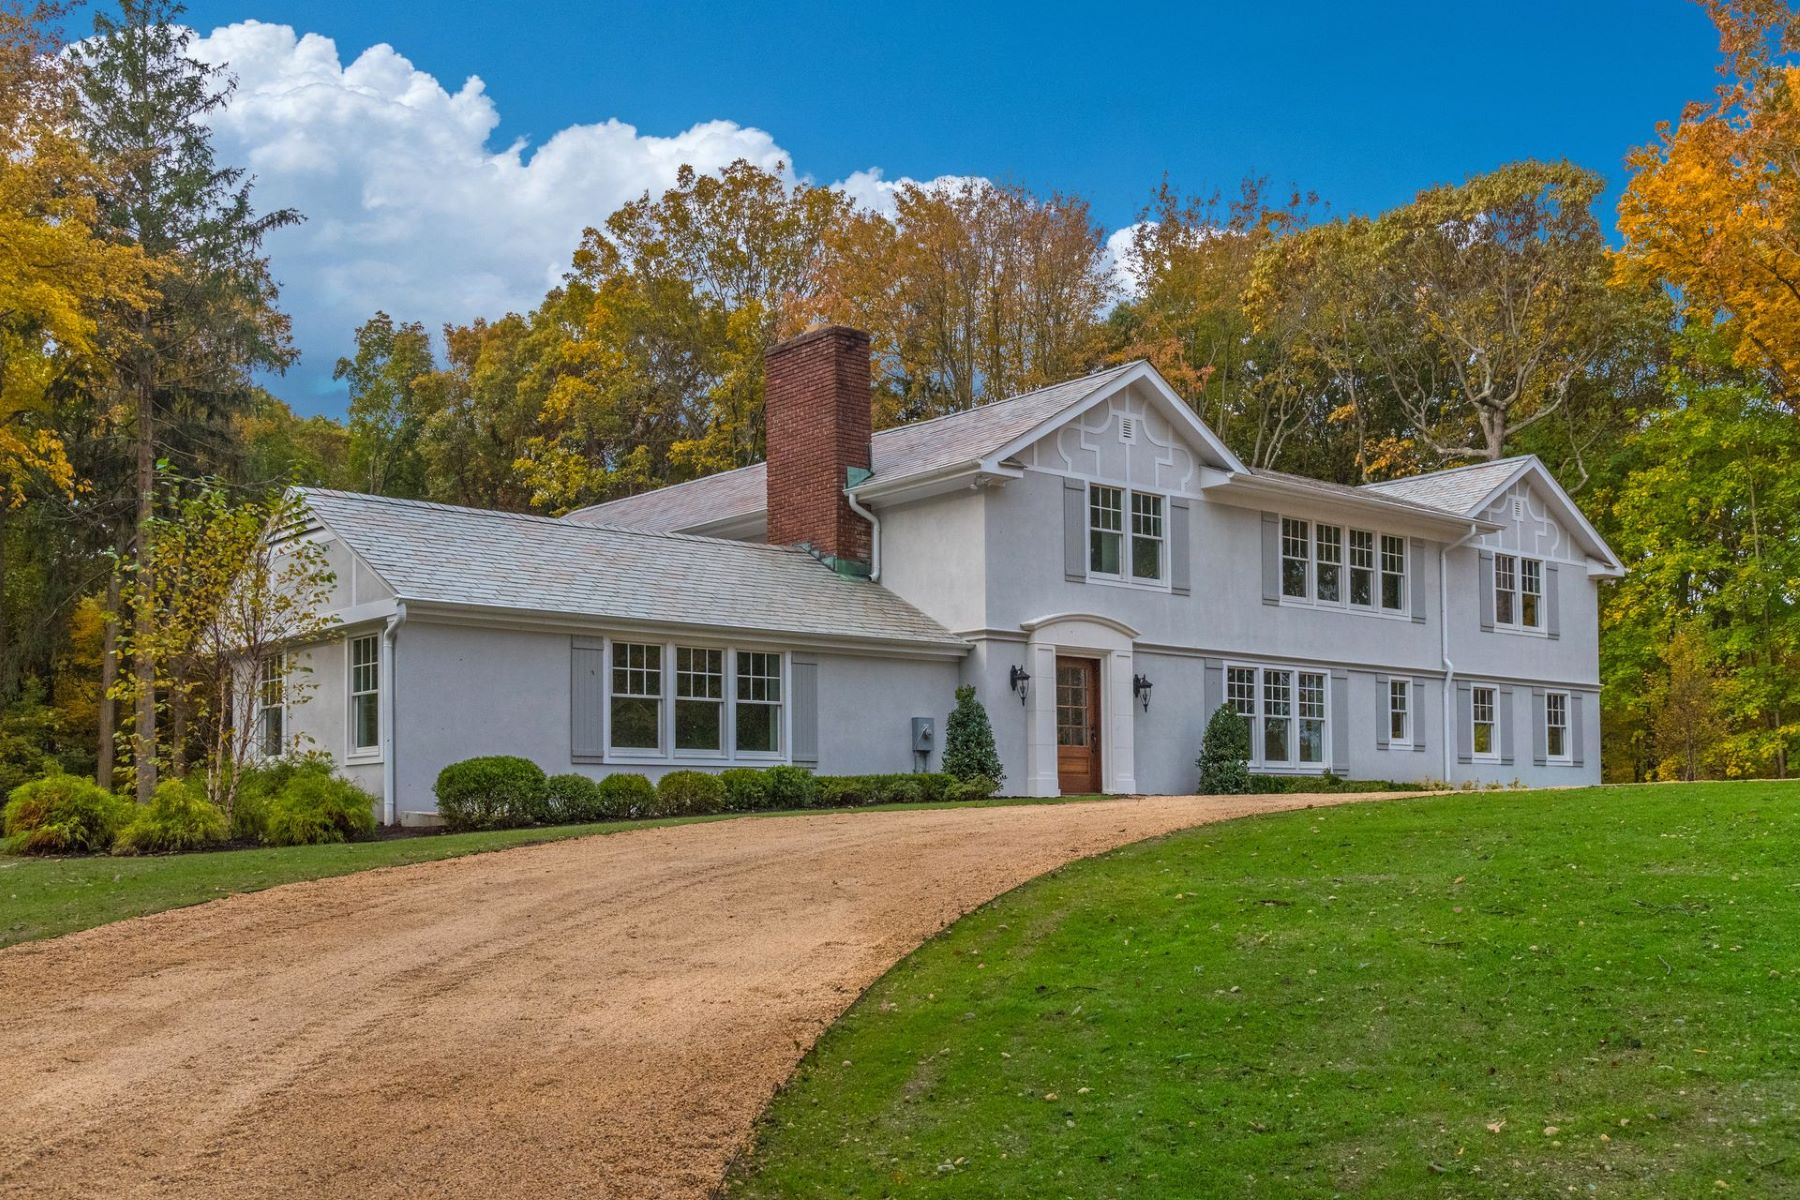 Single Family Homes for Active at Lloyd Neck 4 Sea Crest Dr Lloyd Neck, New York 11743 United States